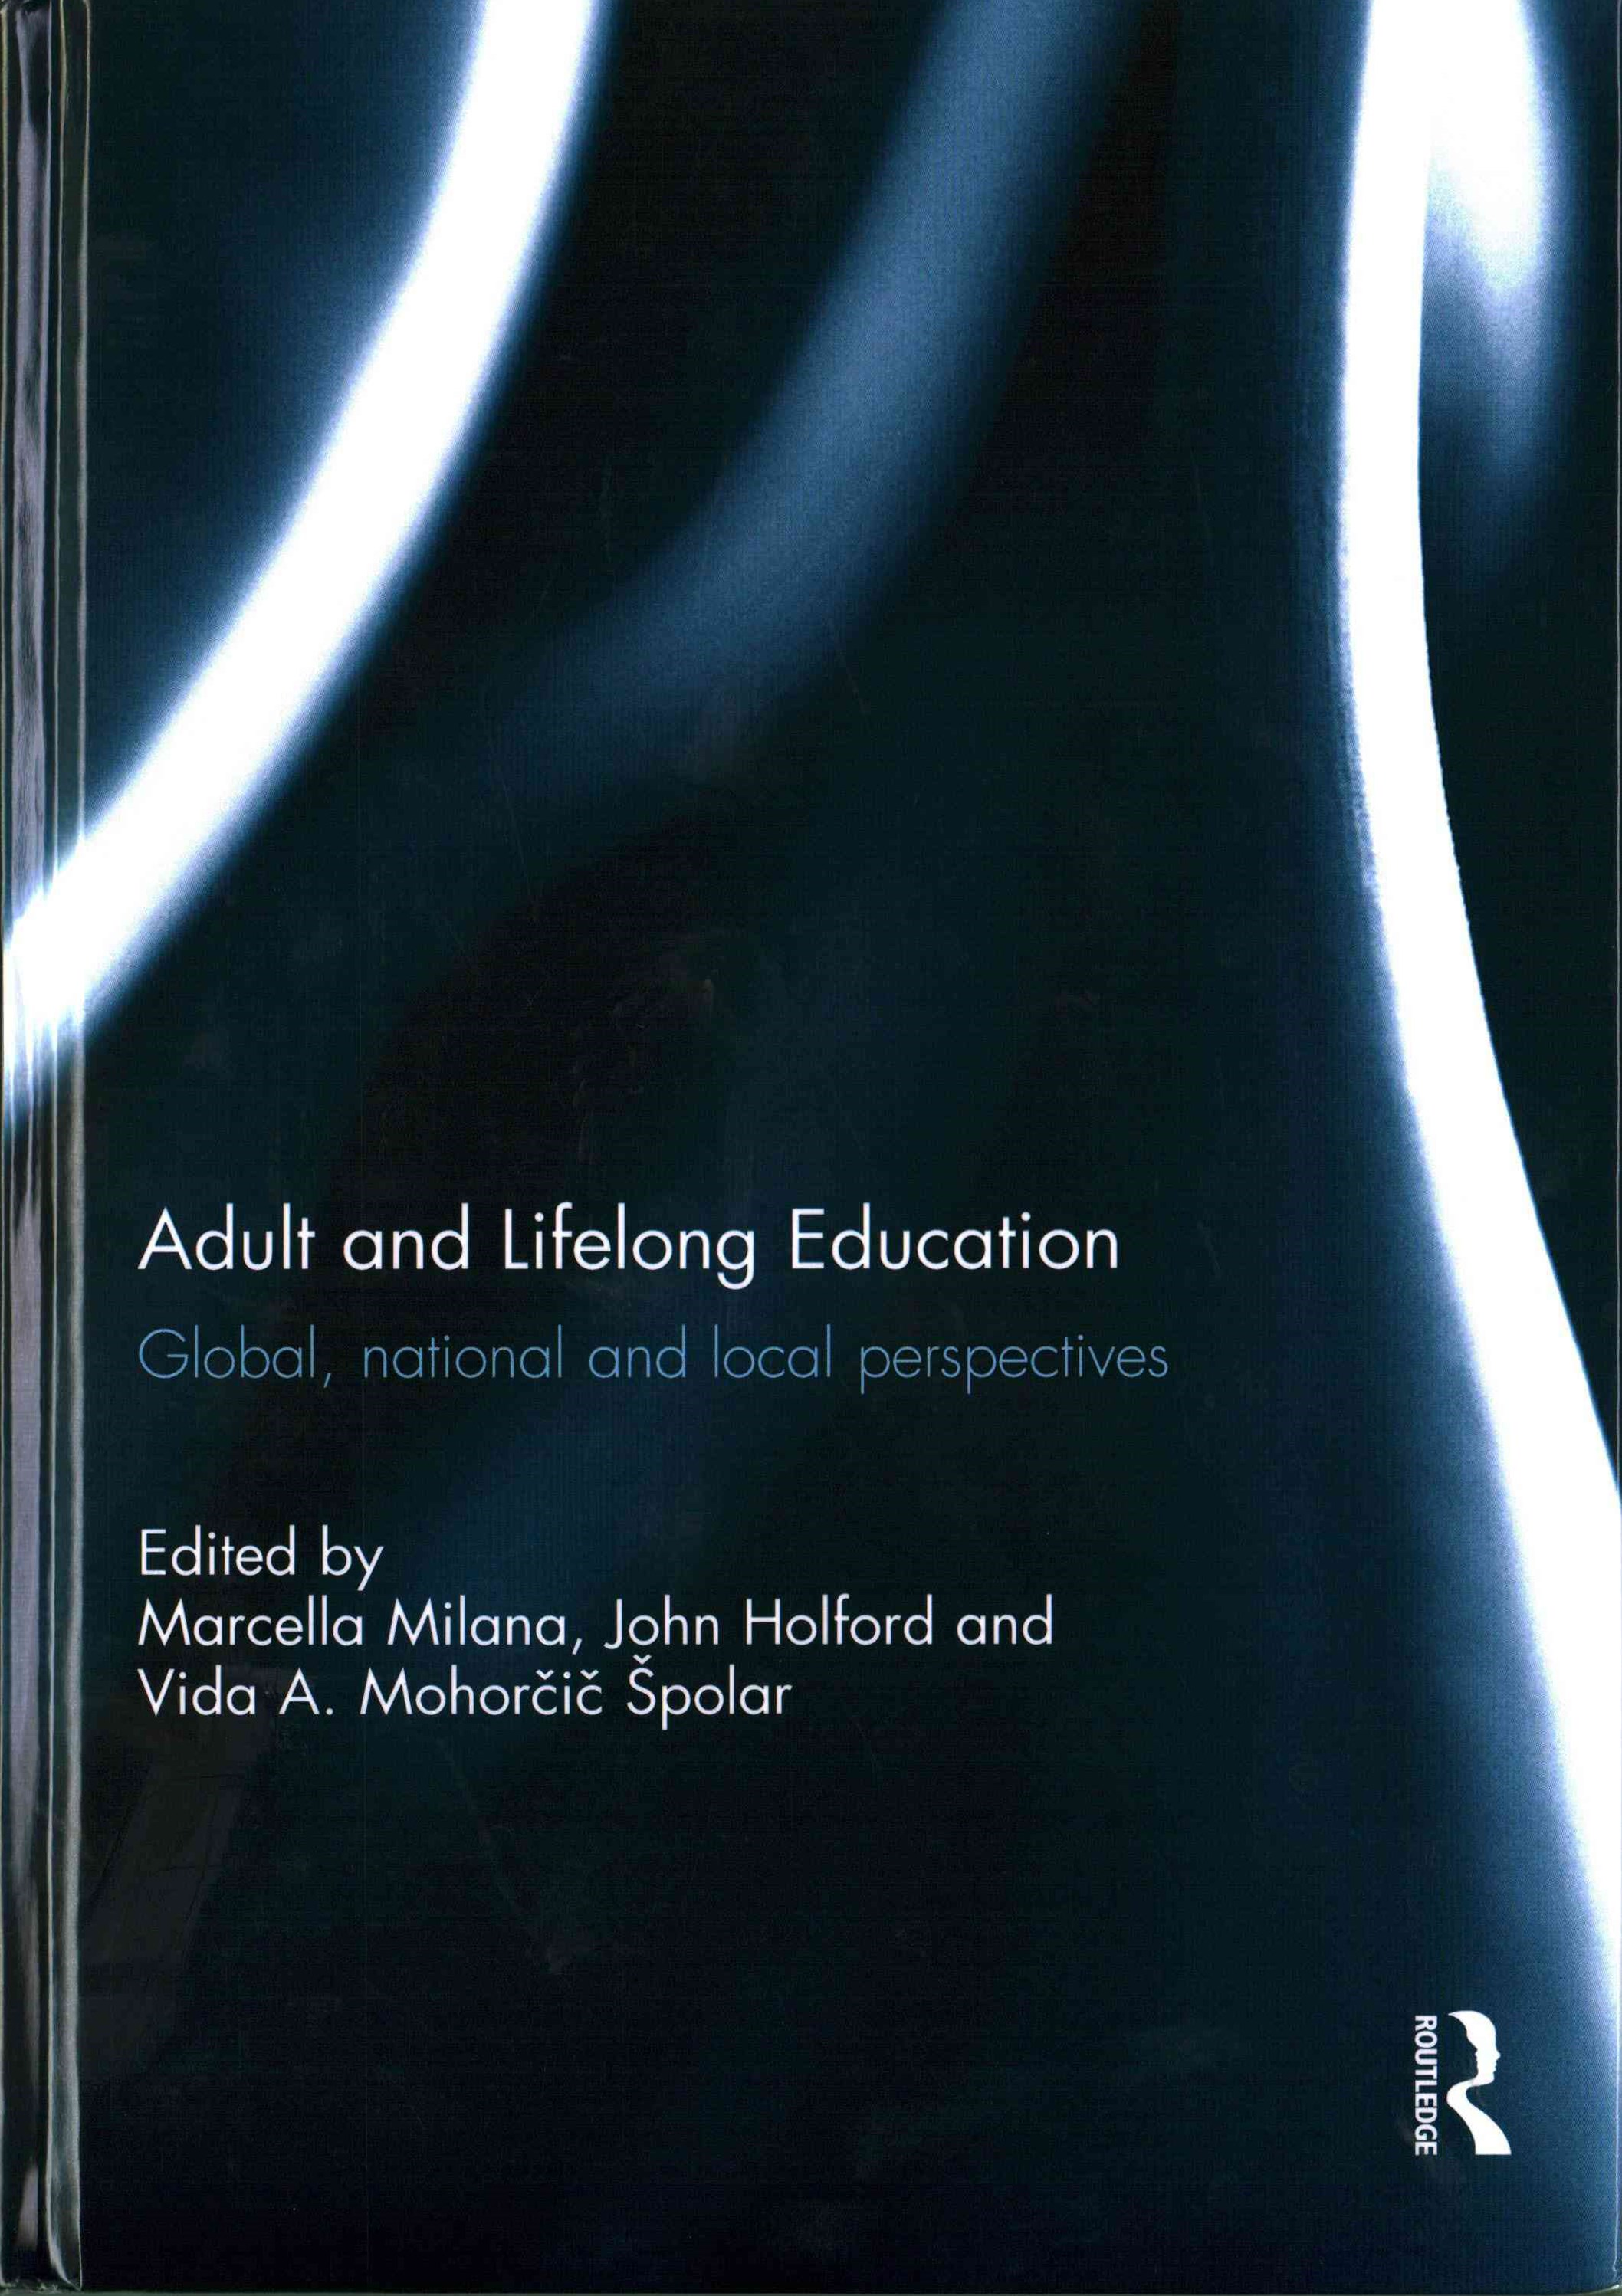 Adult and Lifelong Education